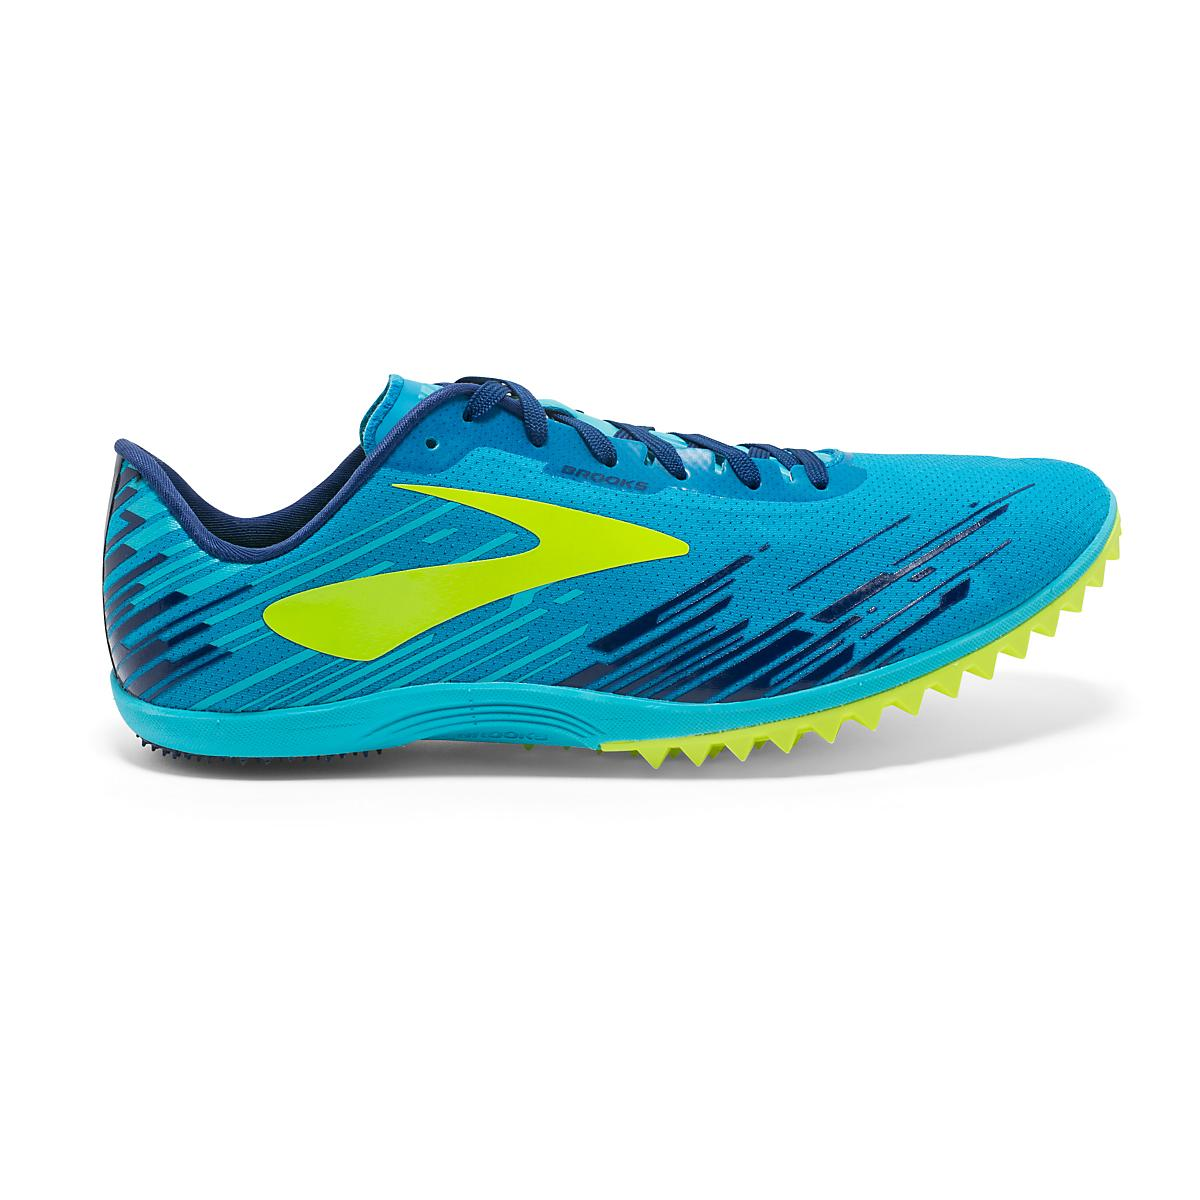 0fb3bb0dd42 Mens Brooks Mach 18 Spikeless Cross Country Shoe at Road Runner Sports